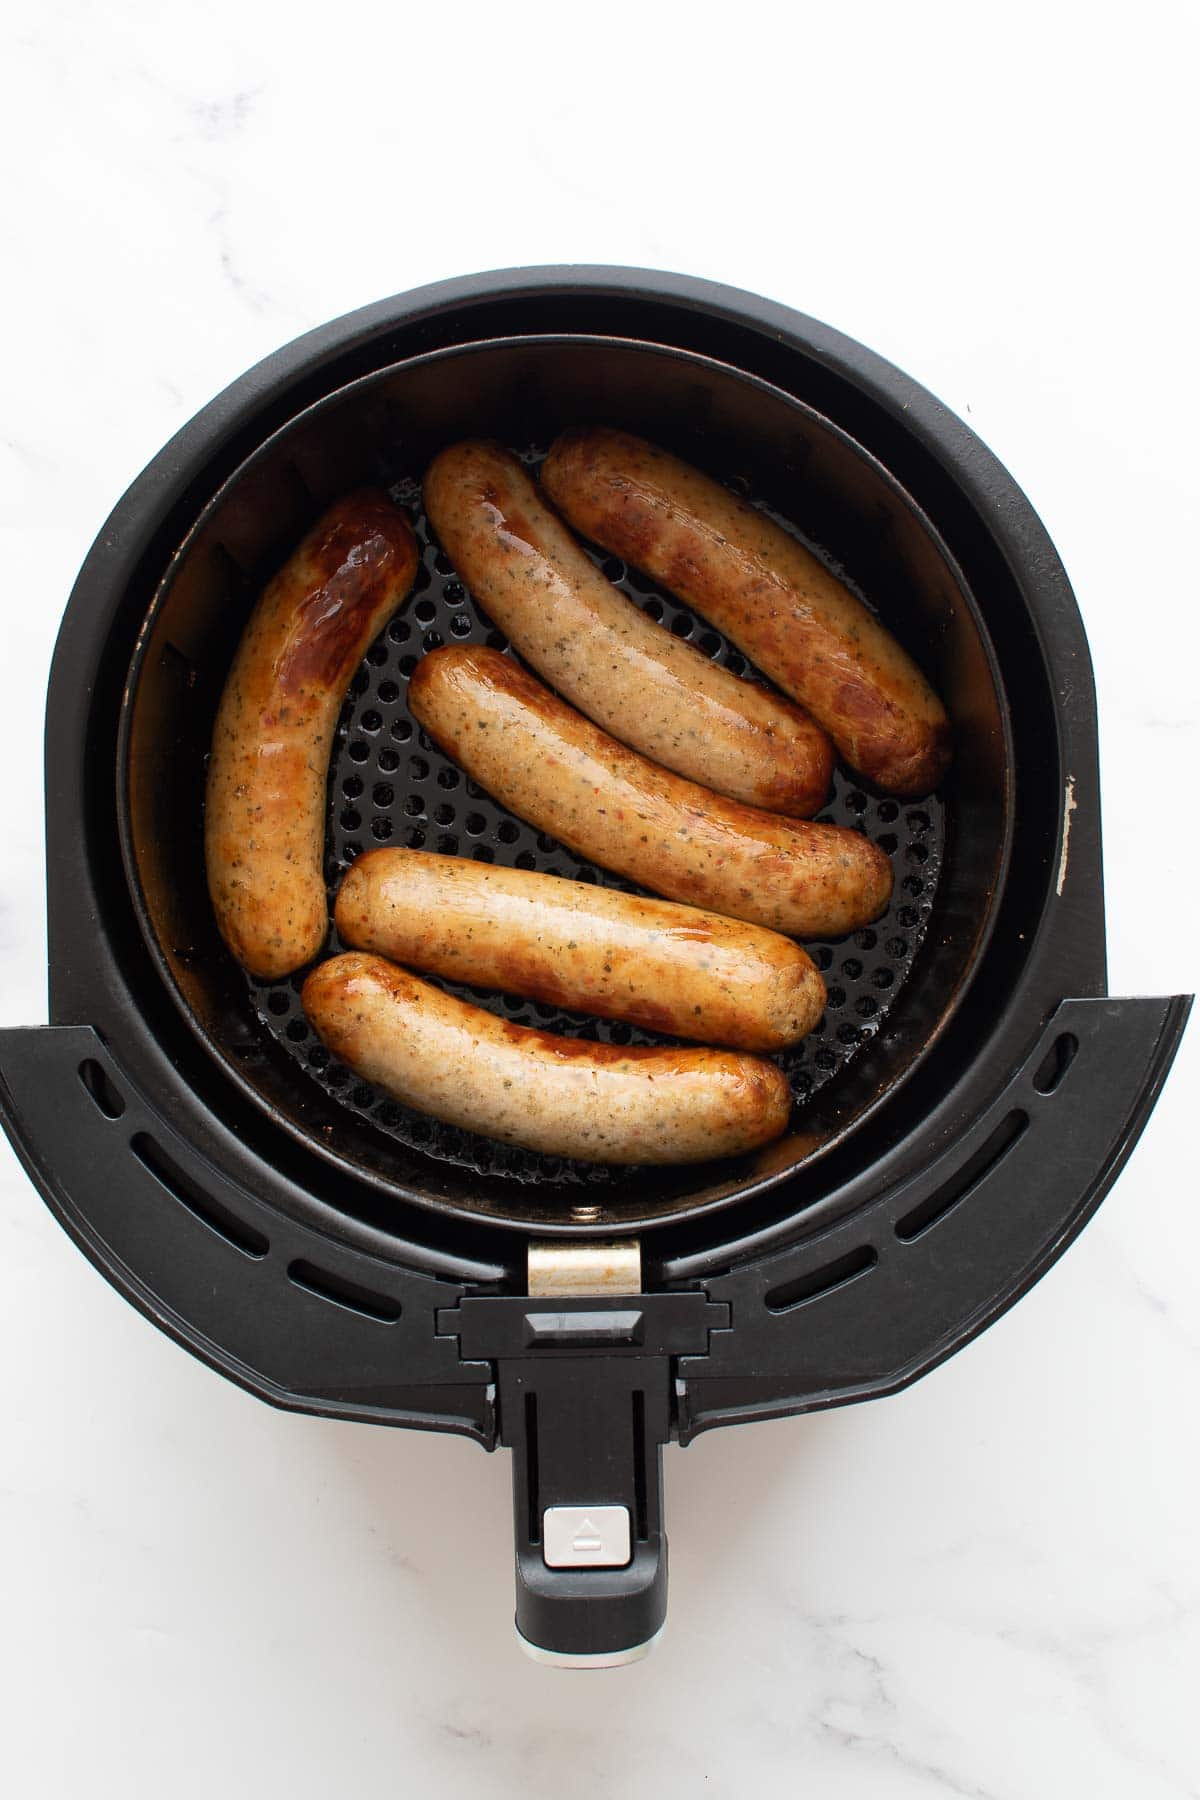 Cooked brats in an air fryer.